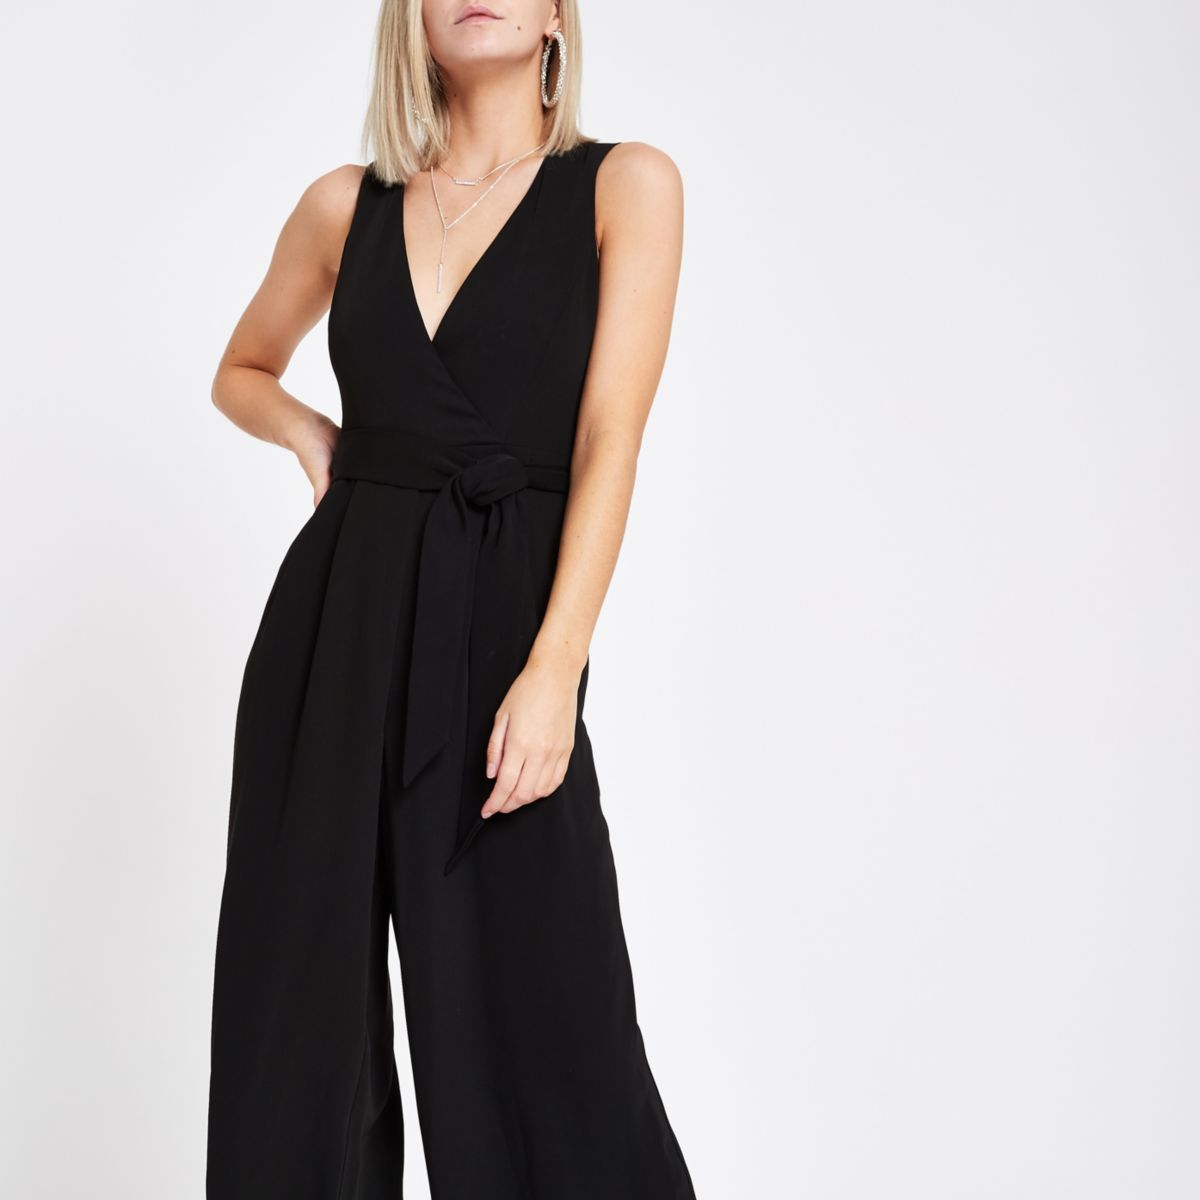 Petite Black wide leg sleeveless jumpsuit